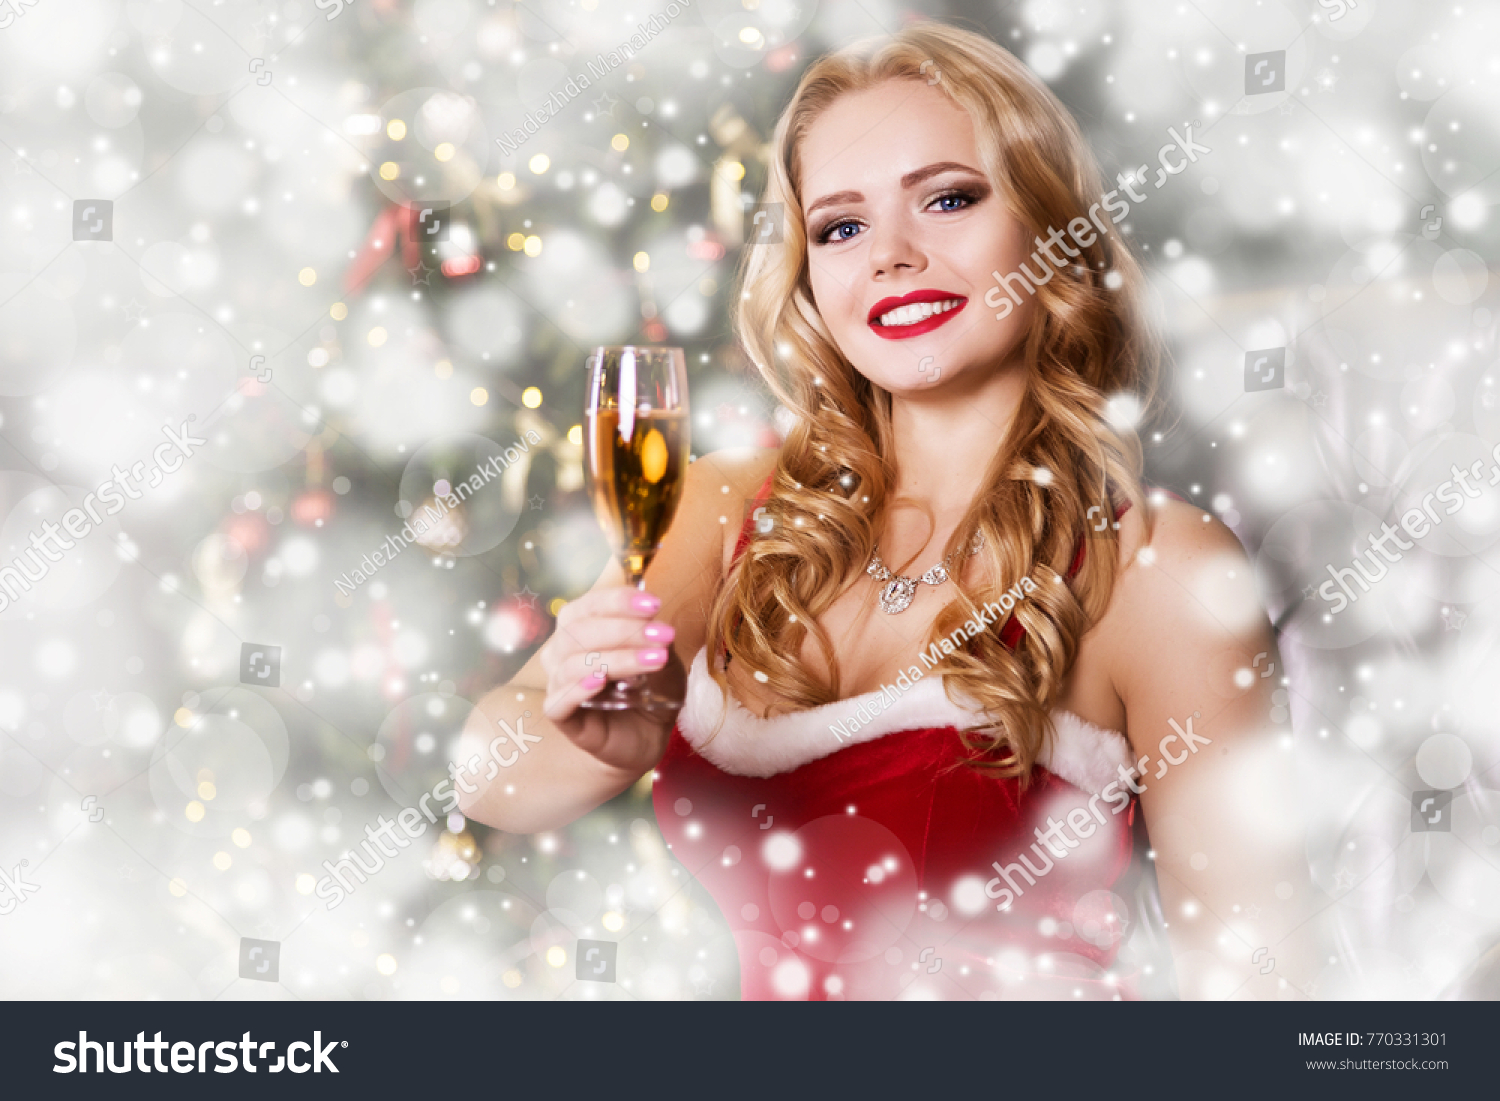 A Beautiful Blonde Woman In A Santa Claus Red Dress Is Surprised Shocked And Ecstatic